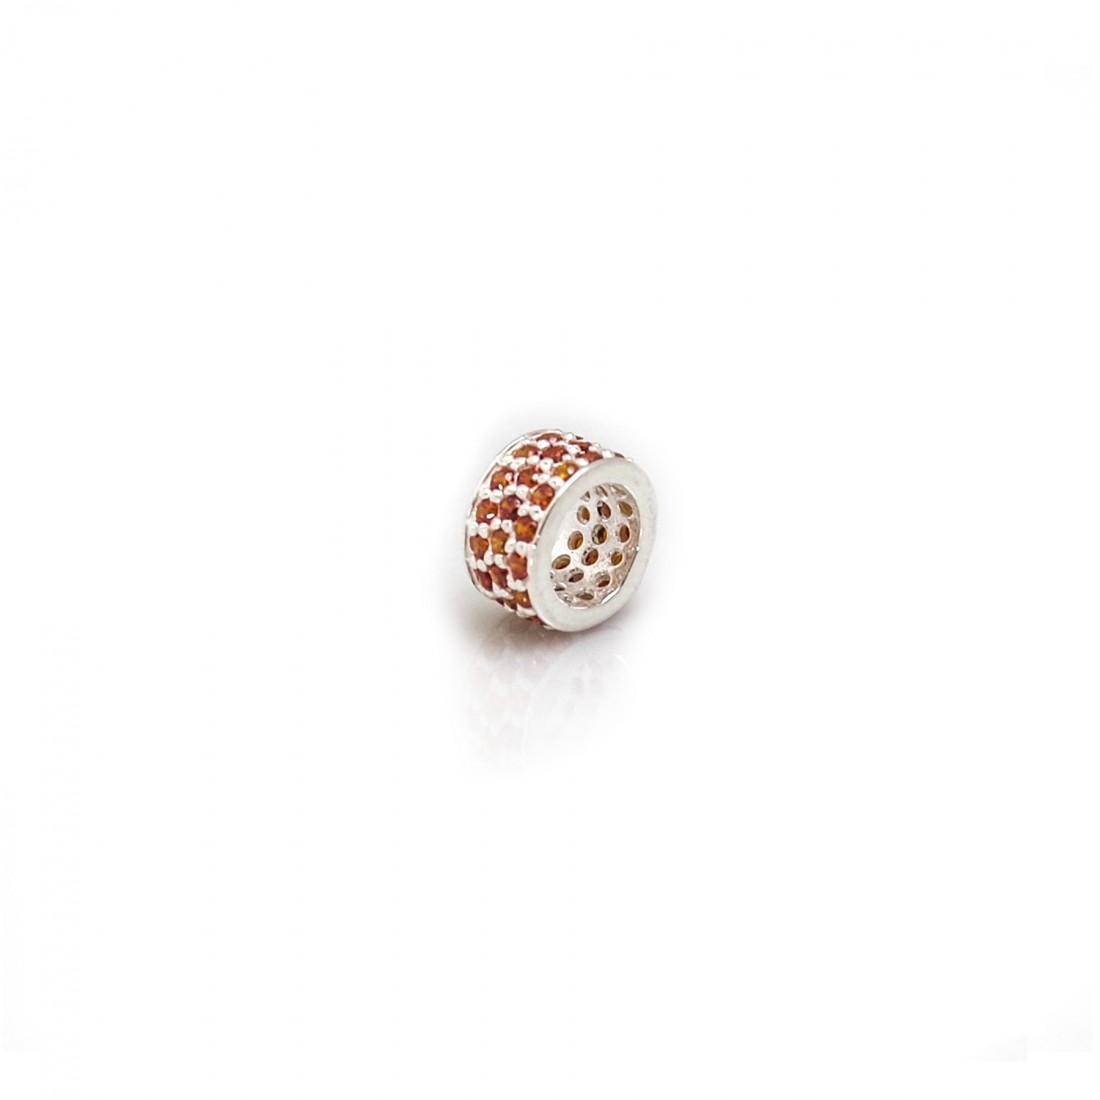 Exclusive Sterling Silver & Orange CZ Starlight Roller Charm Bead